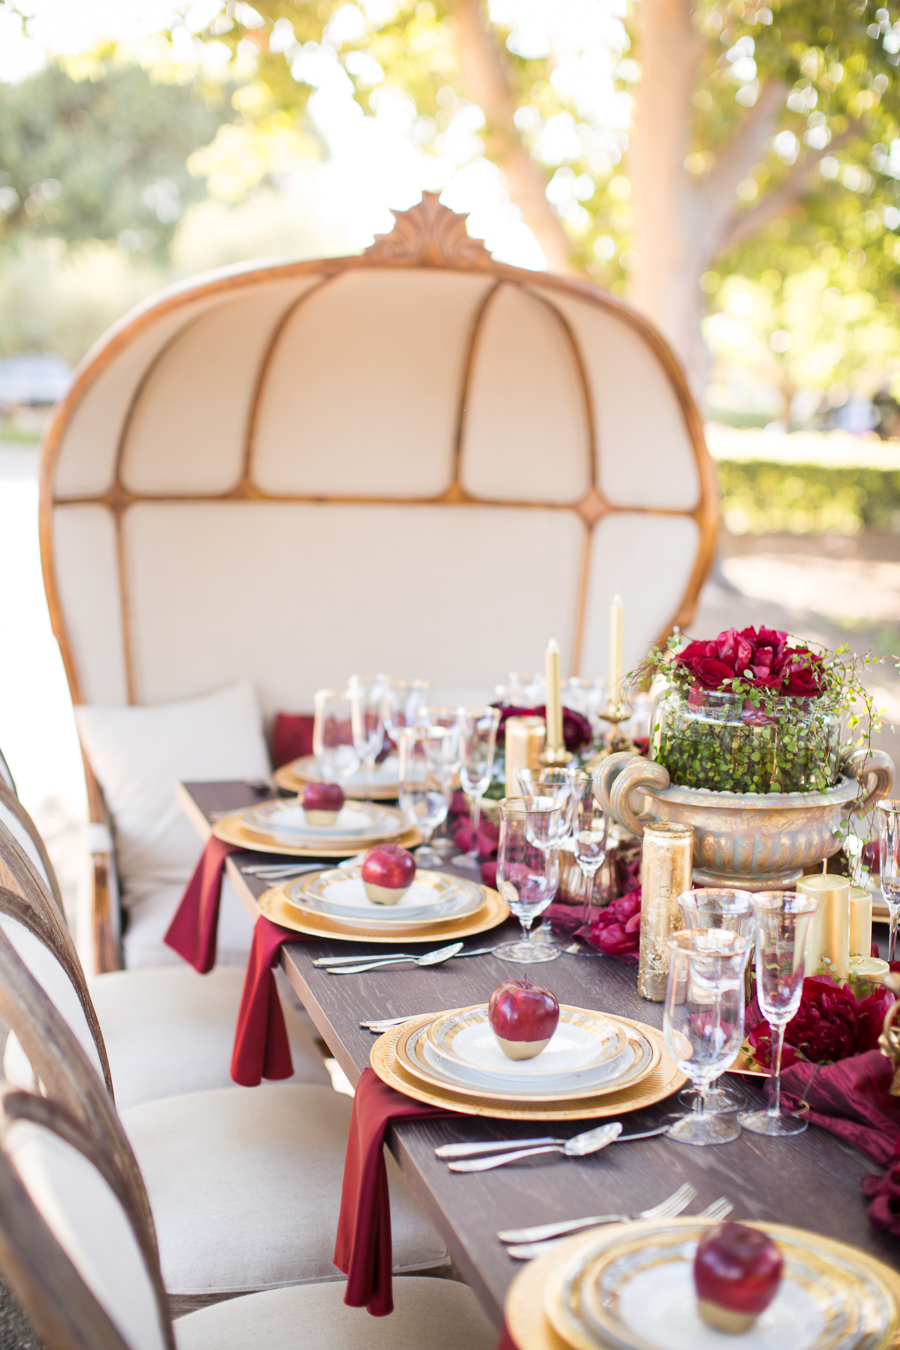 www.santabarbarawedding.com | Ann Johnson Events | Jessica Lewis Photo | Whispering Rose Ranch | Reception Table